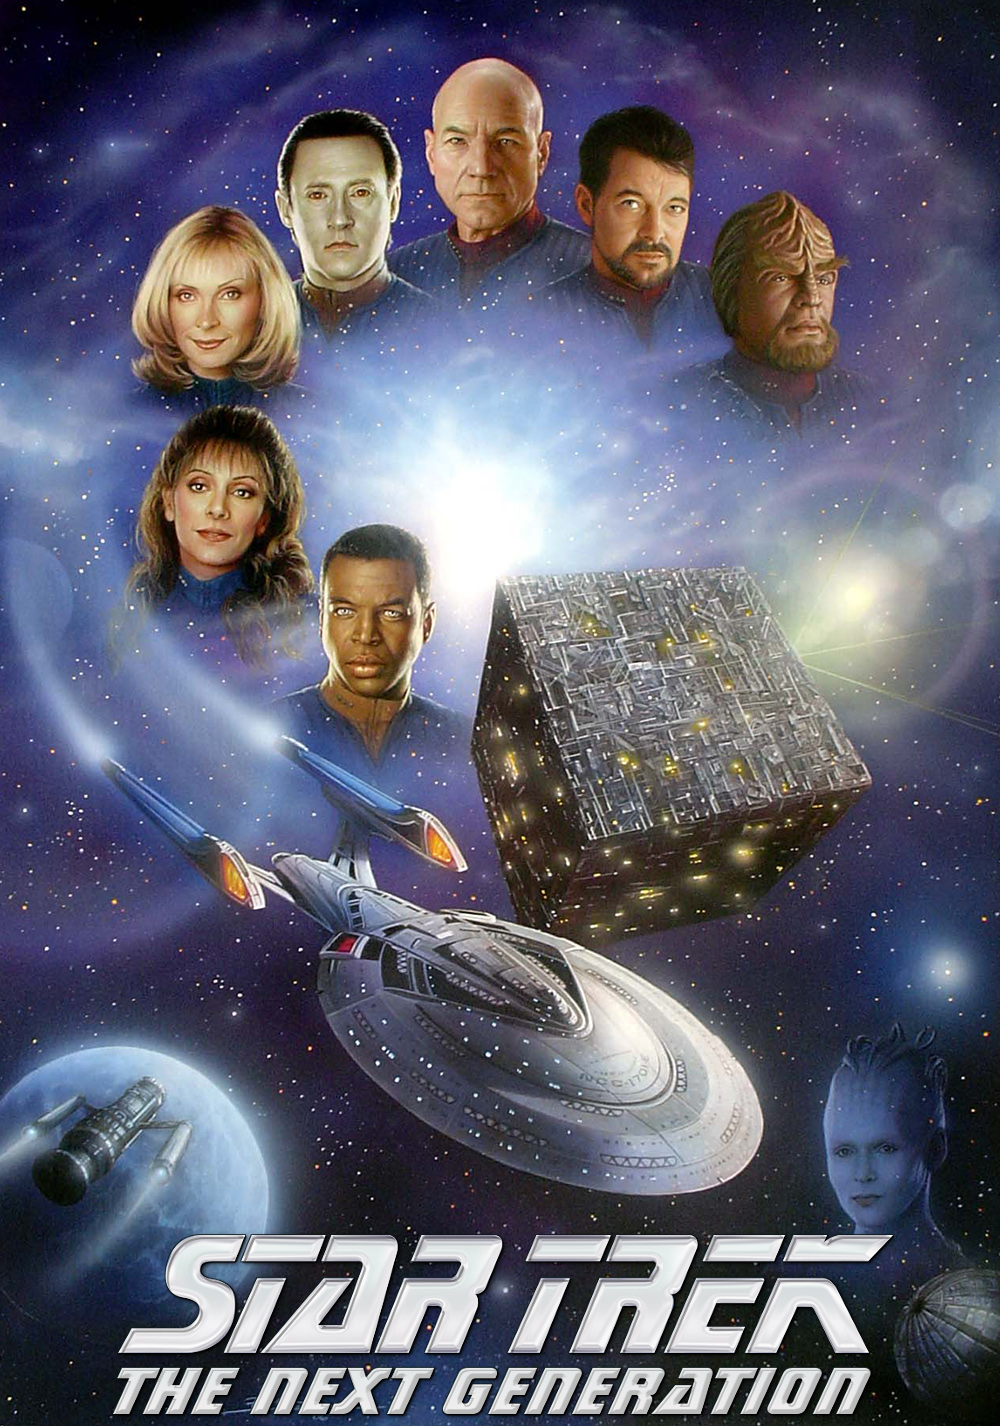 Star Trek: The Next Generation – Season 5